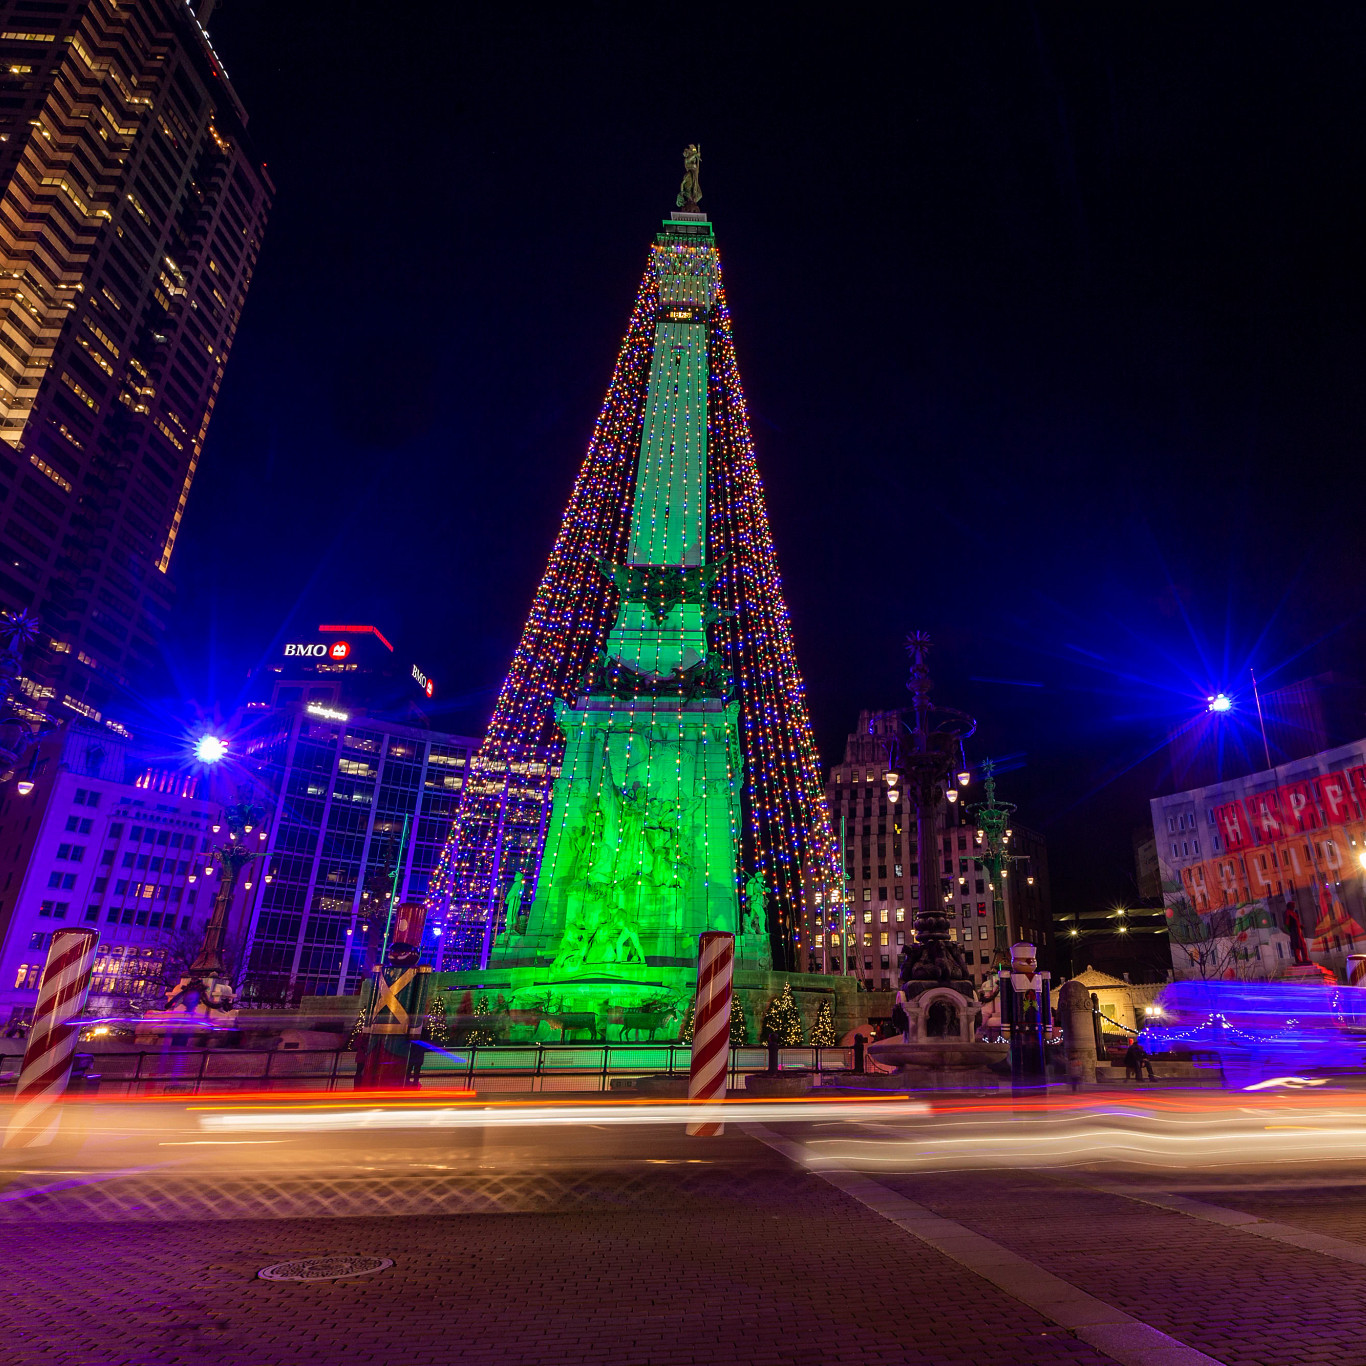 a long exposure captures movement on Monument Circle during Holidays